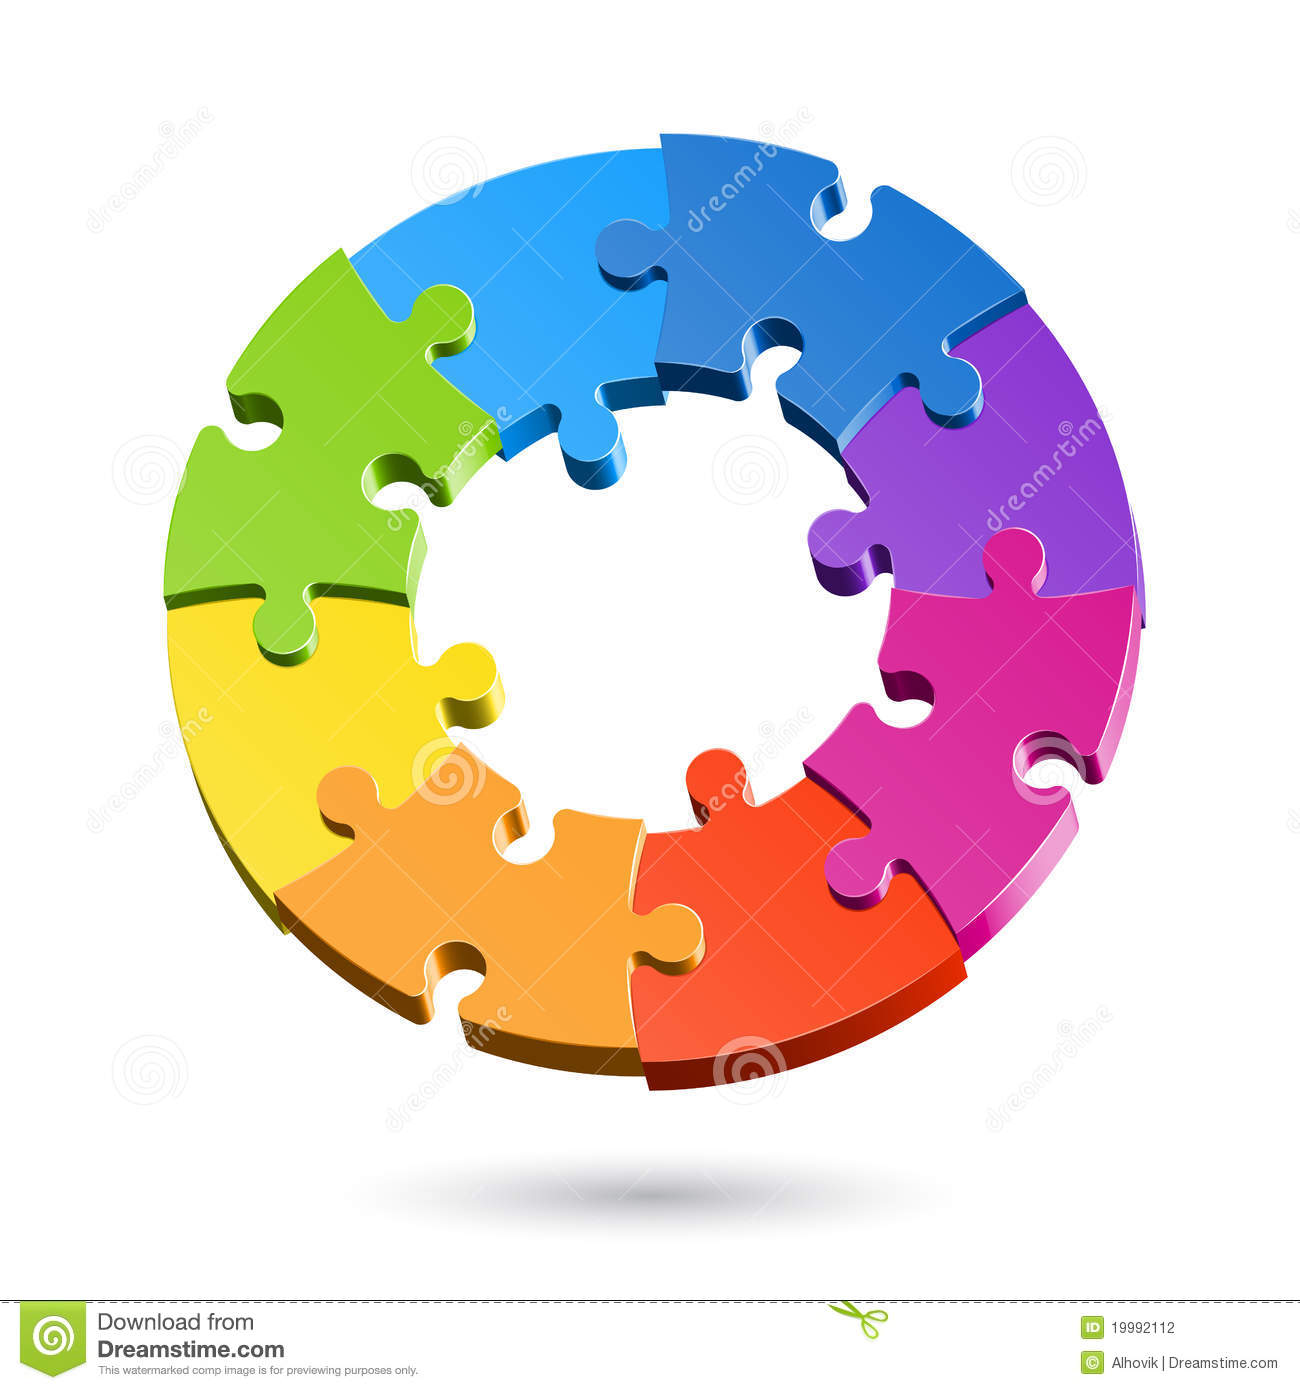 Jigsaw Puzzle Wheel Stock Photography - Image: 19992112